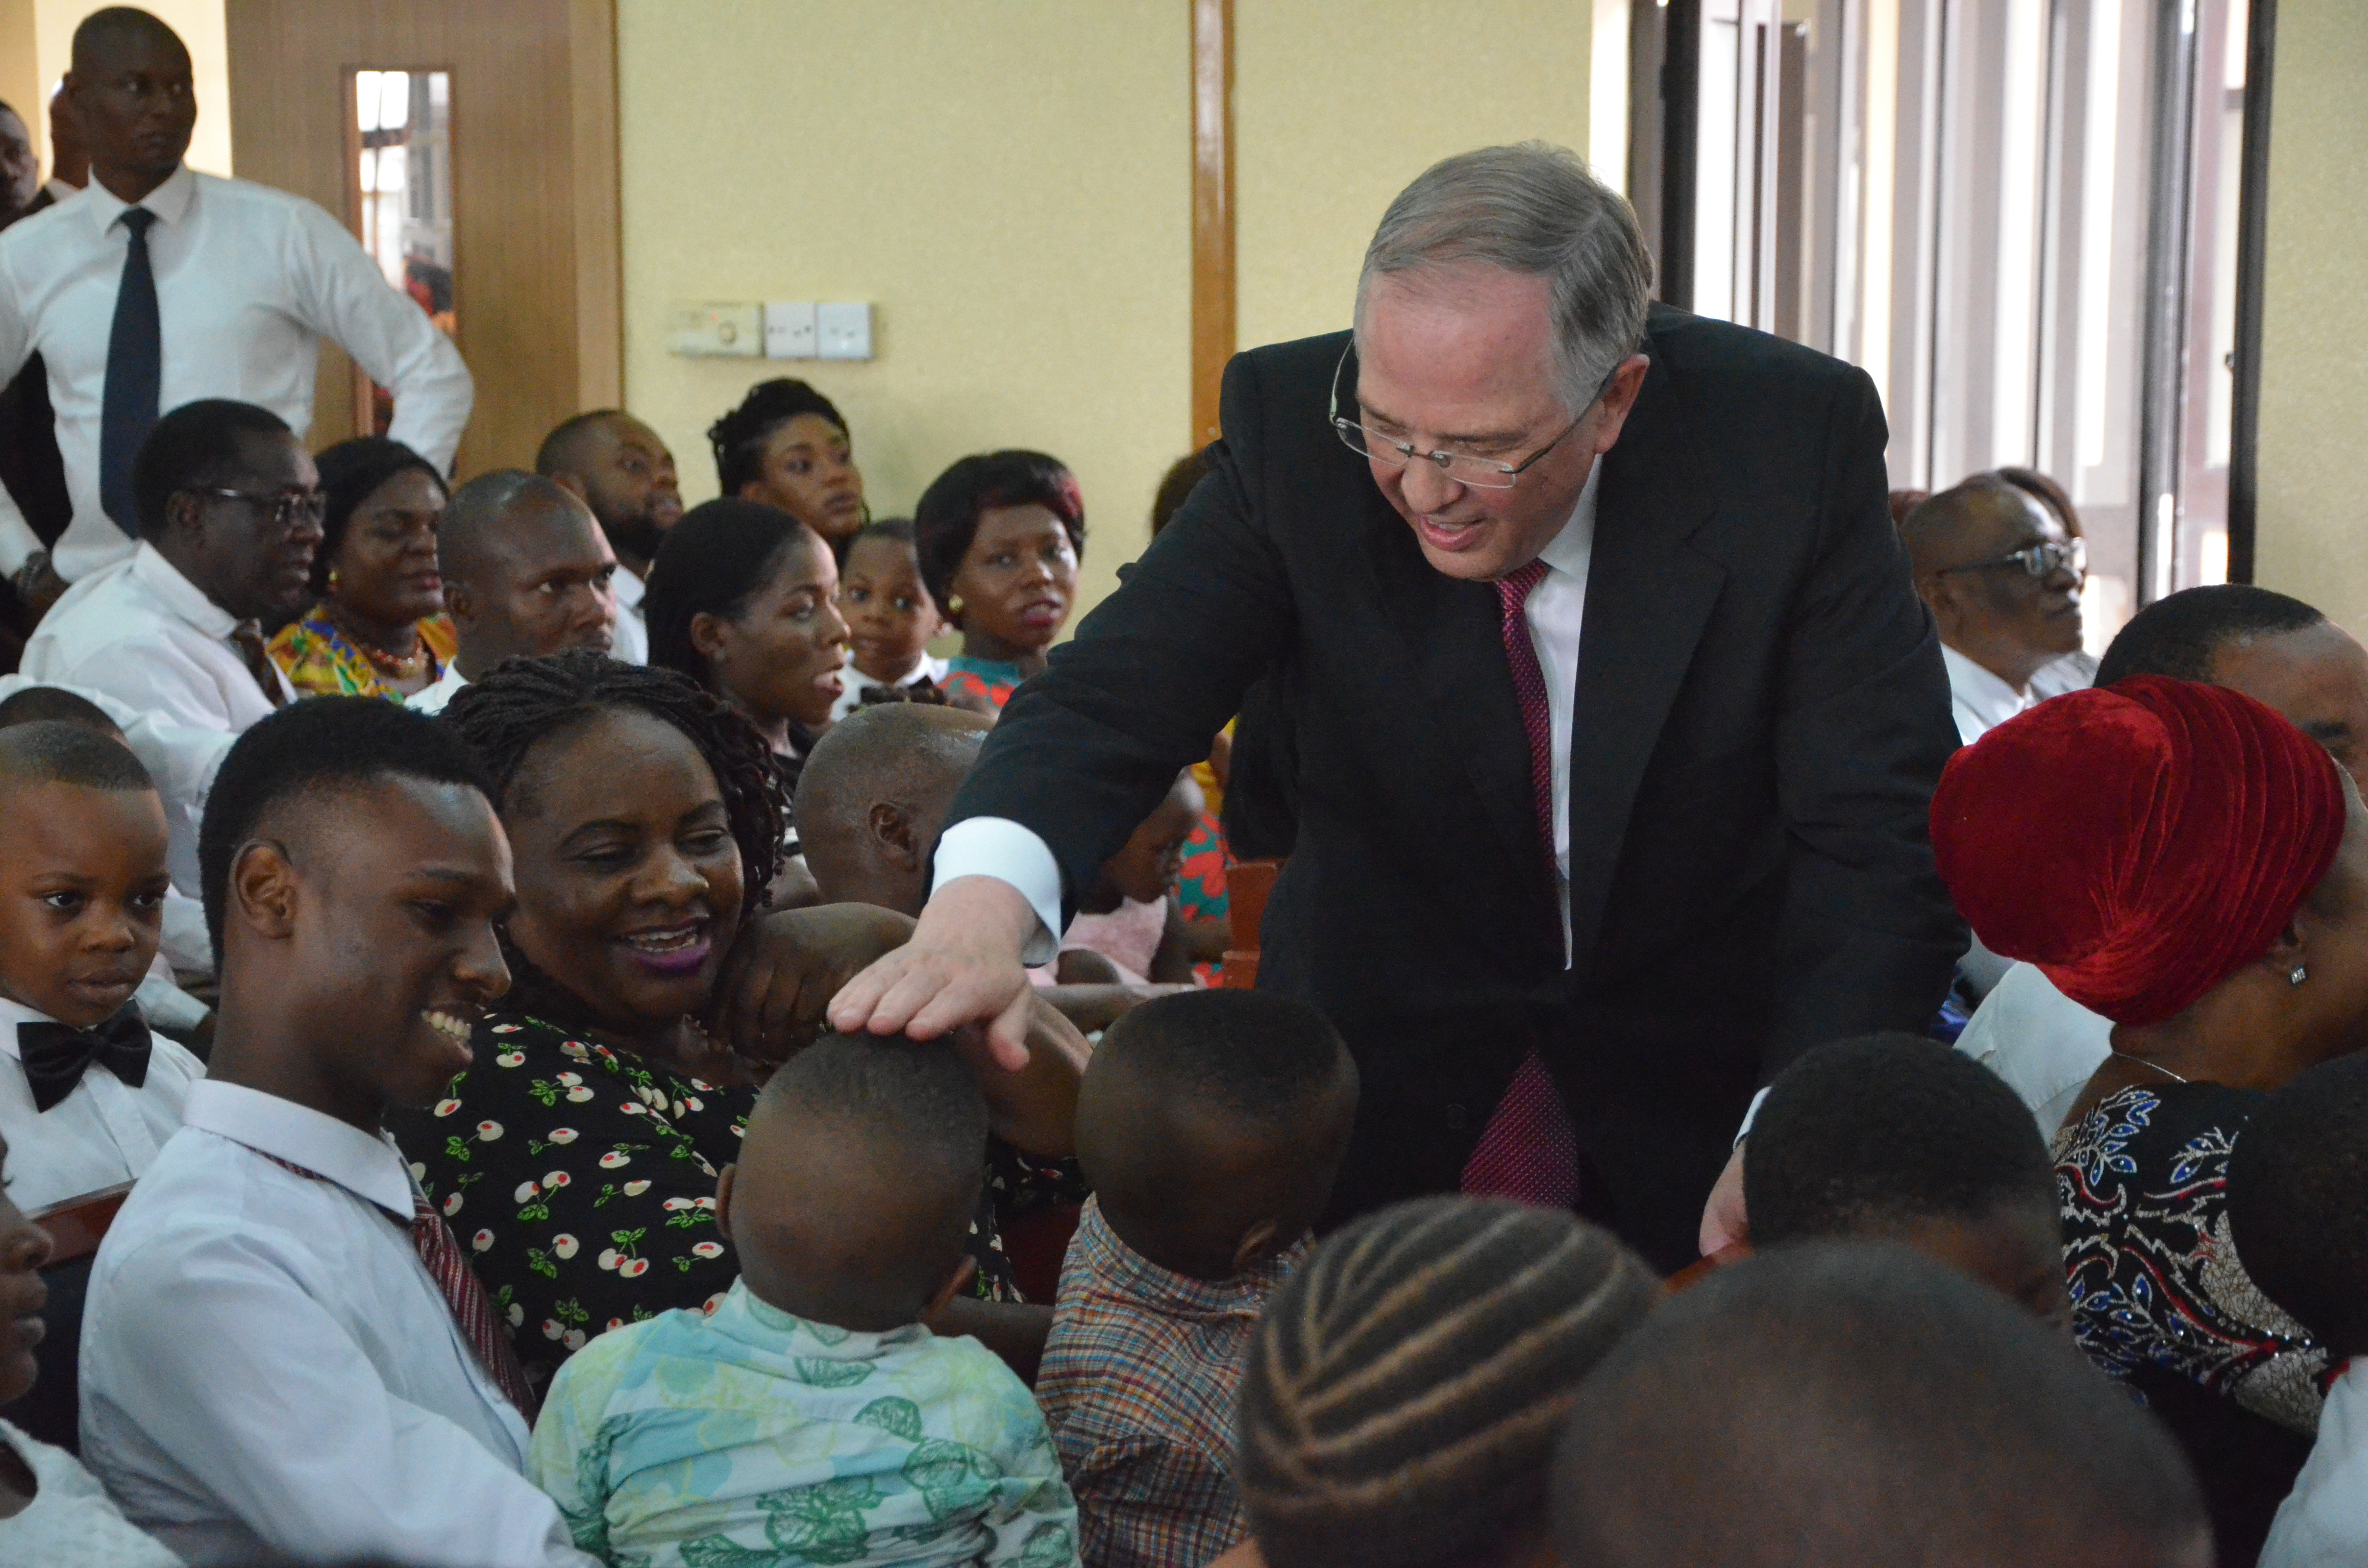 Elder Neil L. Andersen of the Quorum of the Twelve Apostles visits with members during his visit to the Africa West Area of the Church.